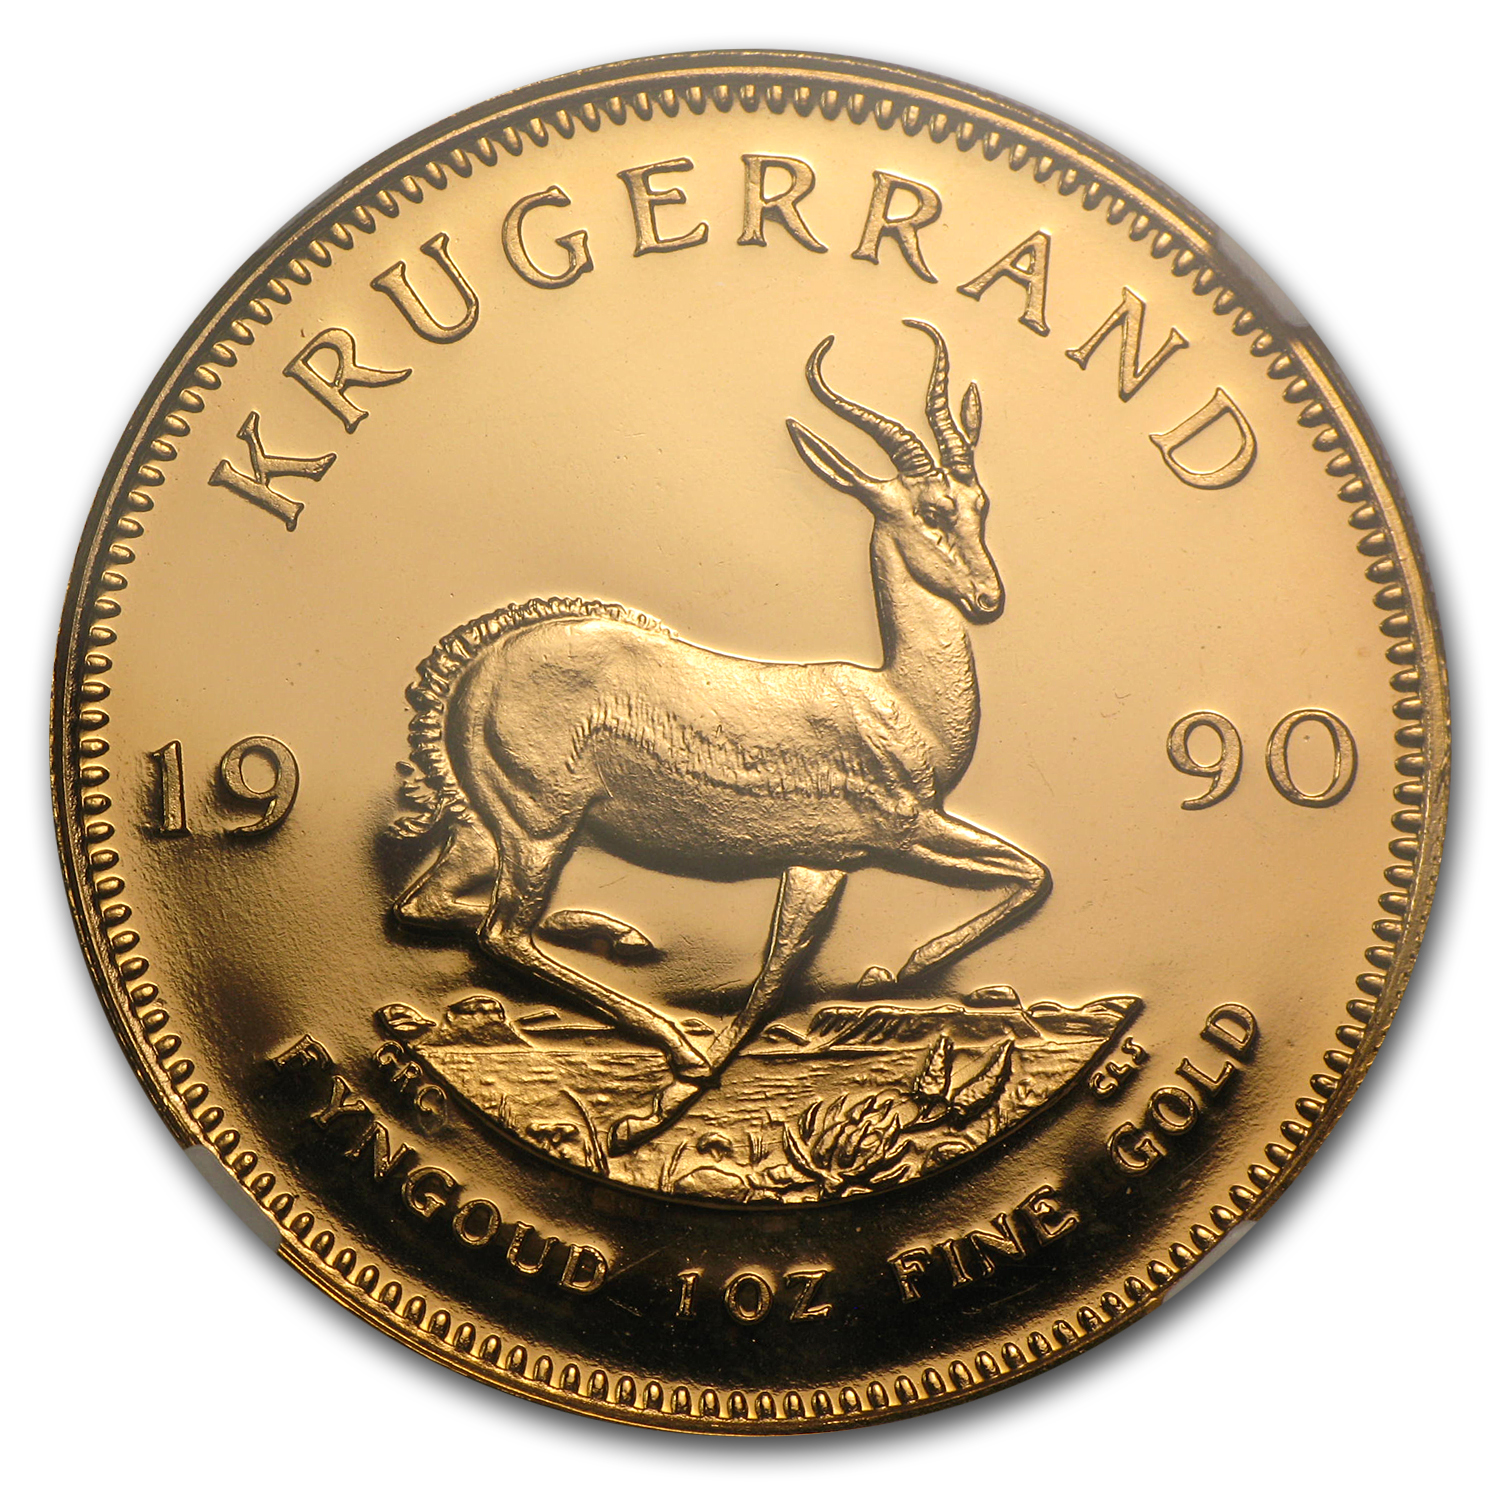 1990 1 oz Gold South African Krugerrand PF-68 NGC